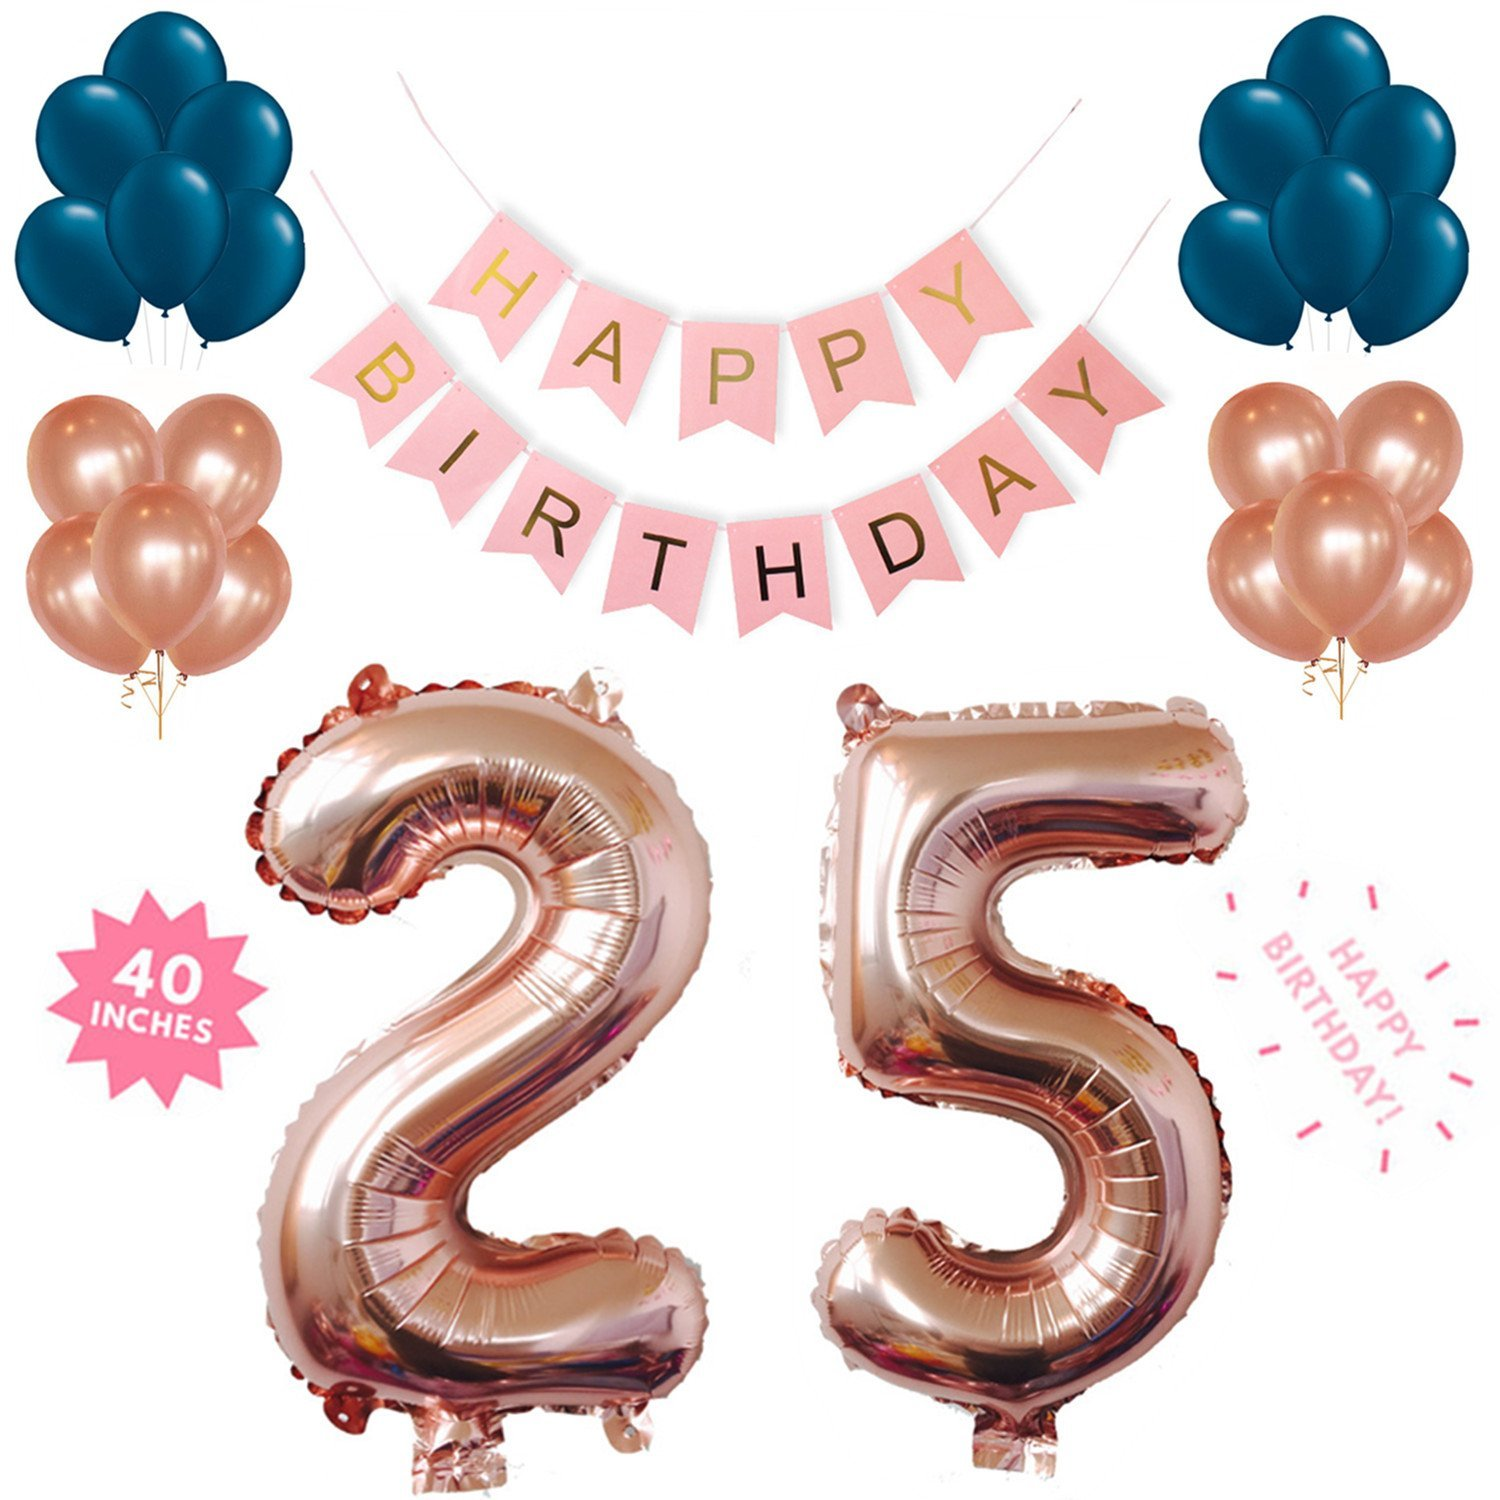 Get Quotations 25 Rose Gold 40 Inch Huge Giant Number Balloons Foil Mylar With Pink Happy